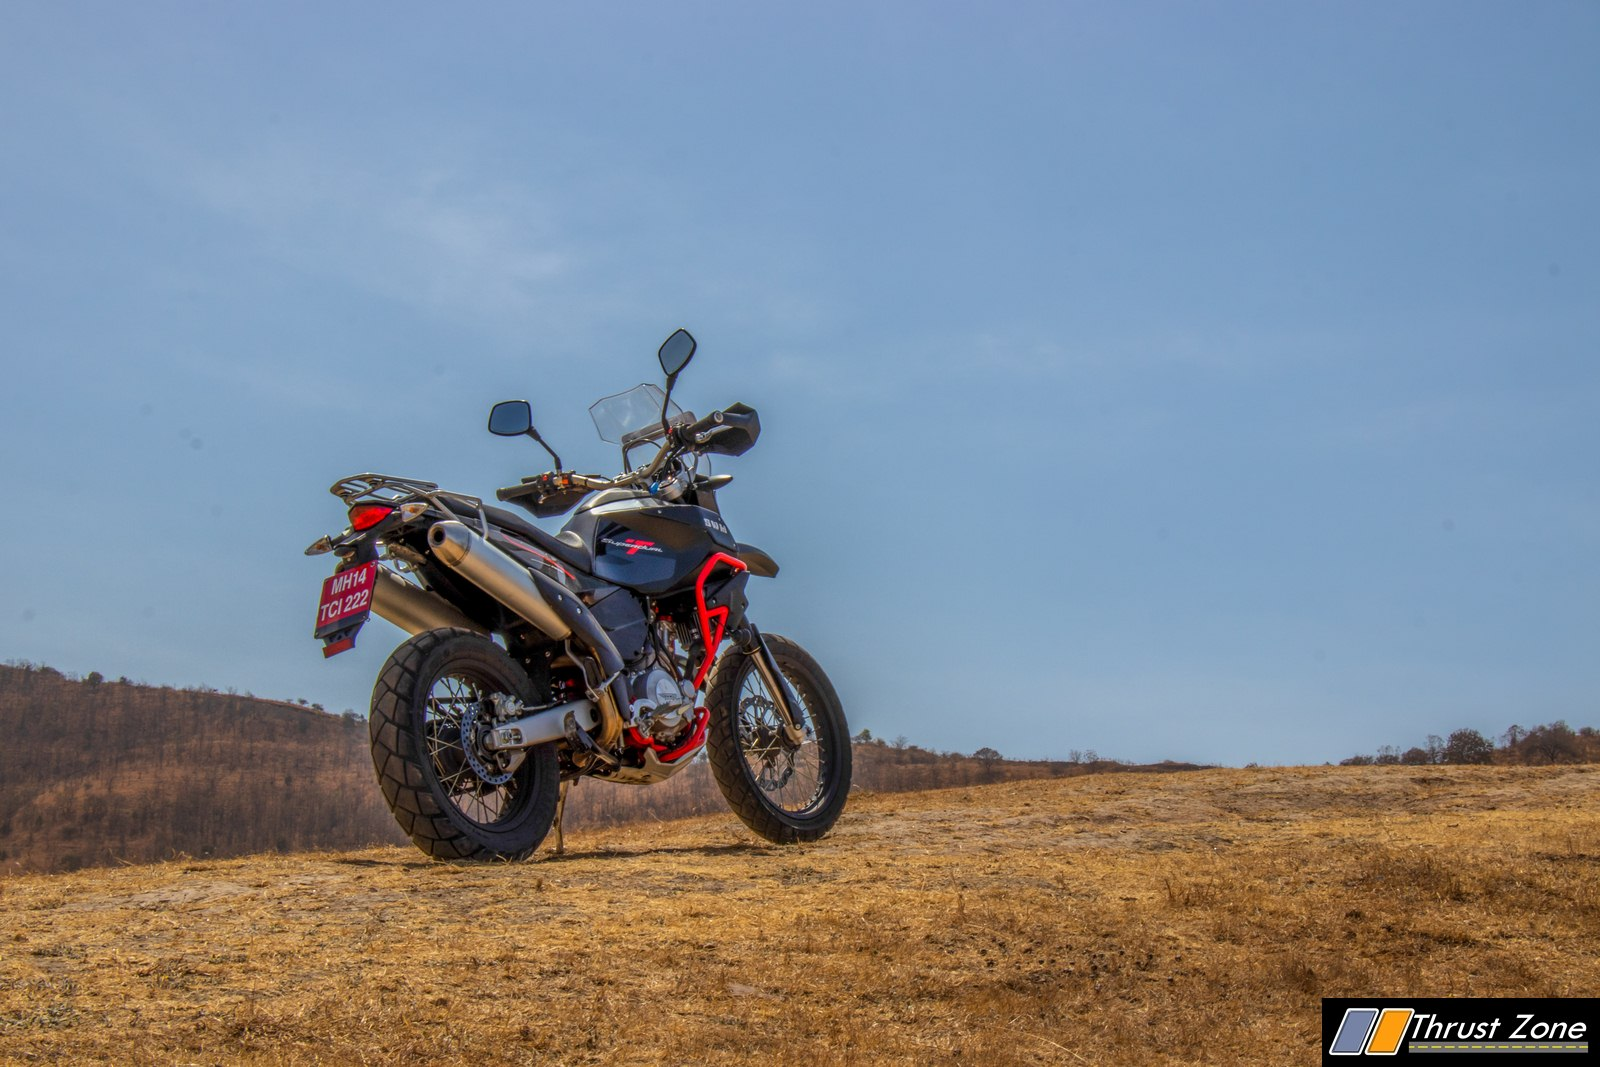 https://www.thrustzone.com/wp-content/uploads/2019/03/SWM-Super-Dual-T-600-India-Review-2.jpg